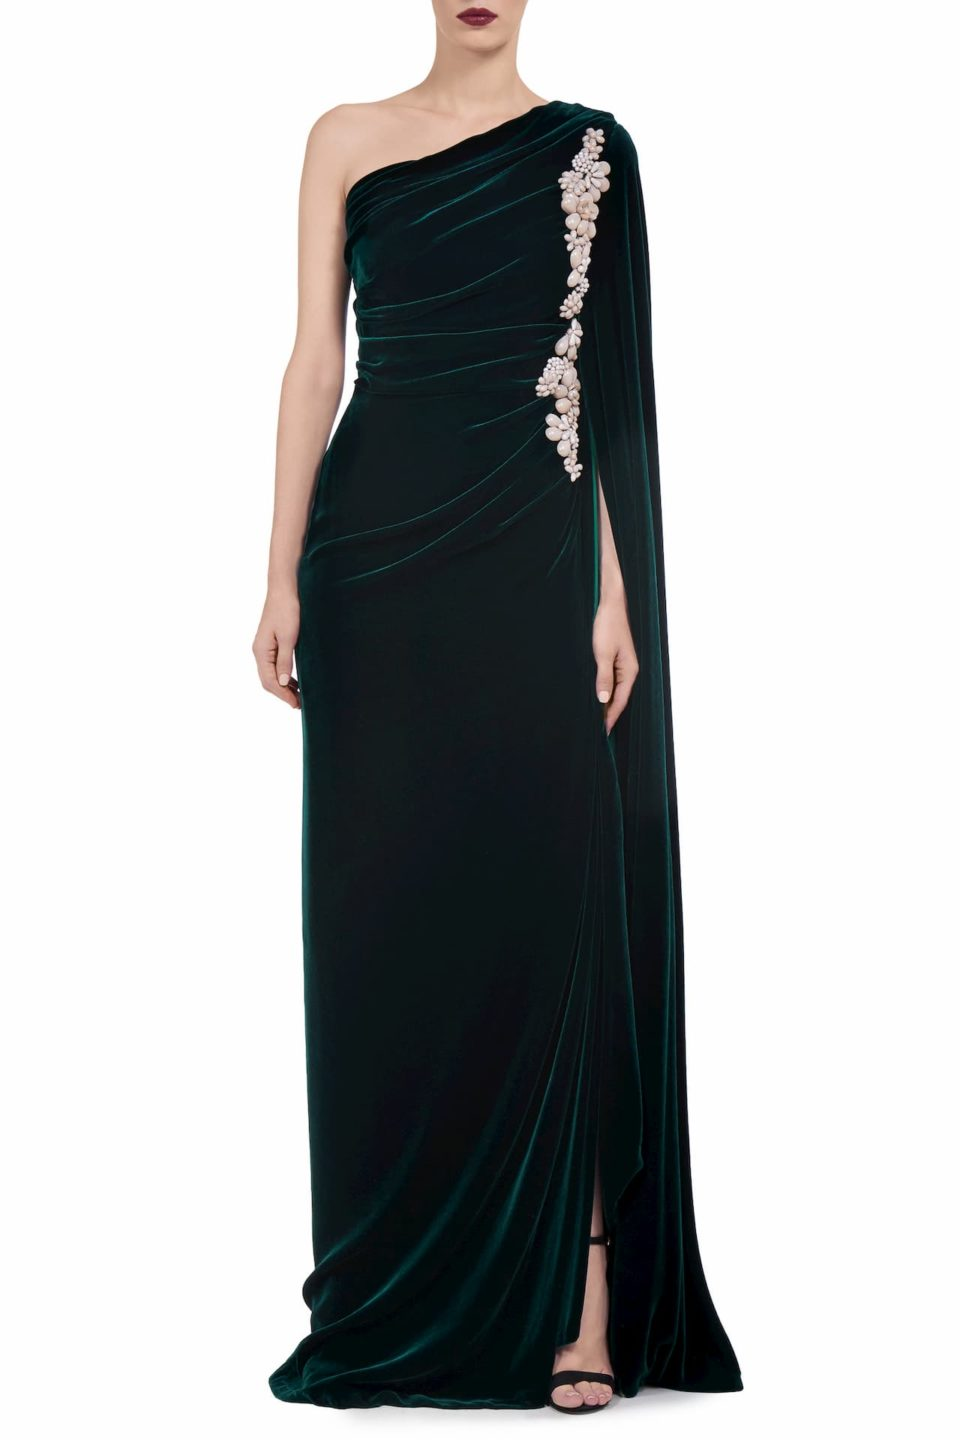 Edwina FW2023 green Silk Velvet Draped One-Shoulder Gown with Embellishment & Ruching Detail